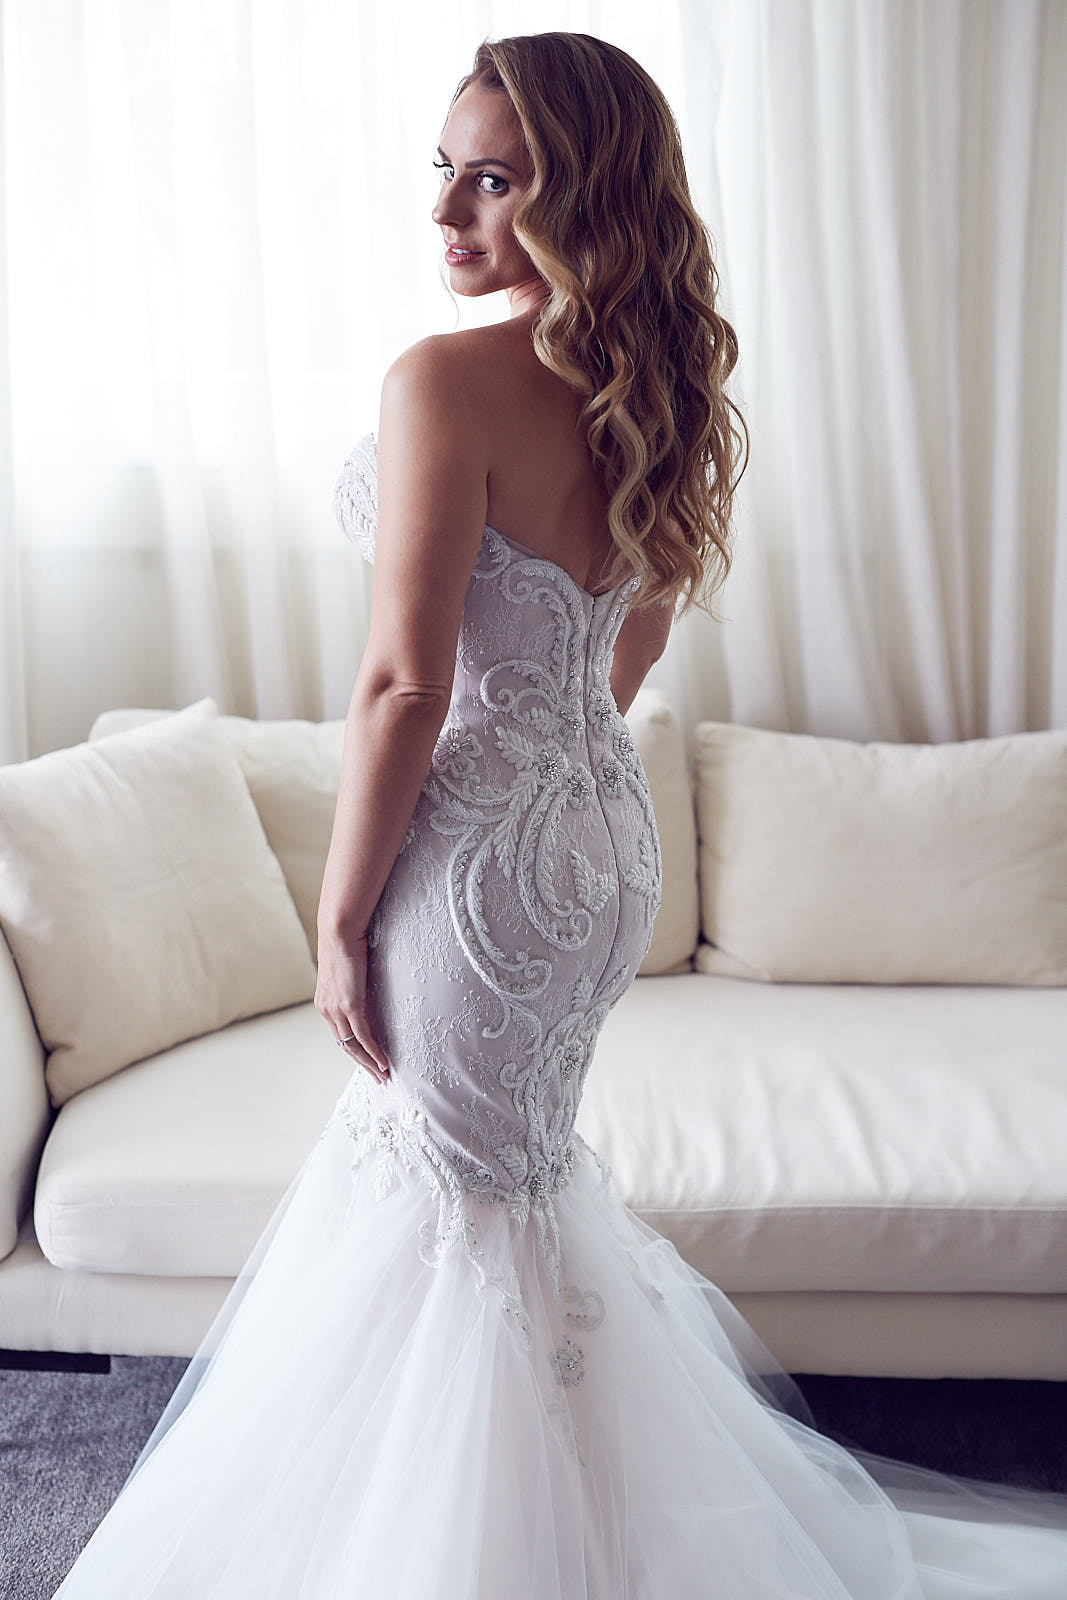 Steven Khalil Destination wedding photographer Lost In Love Photography